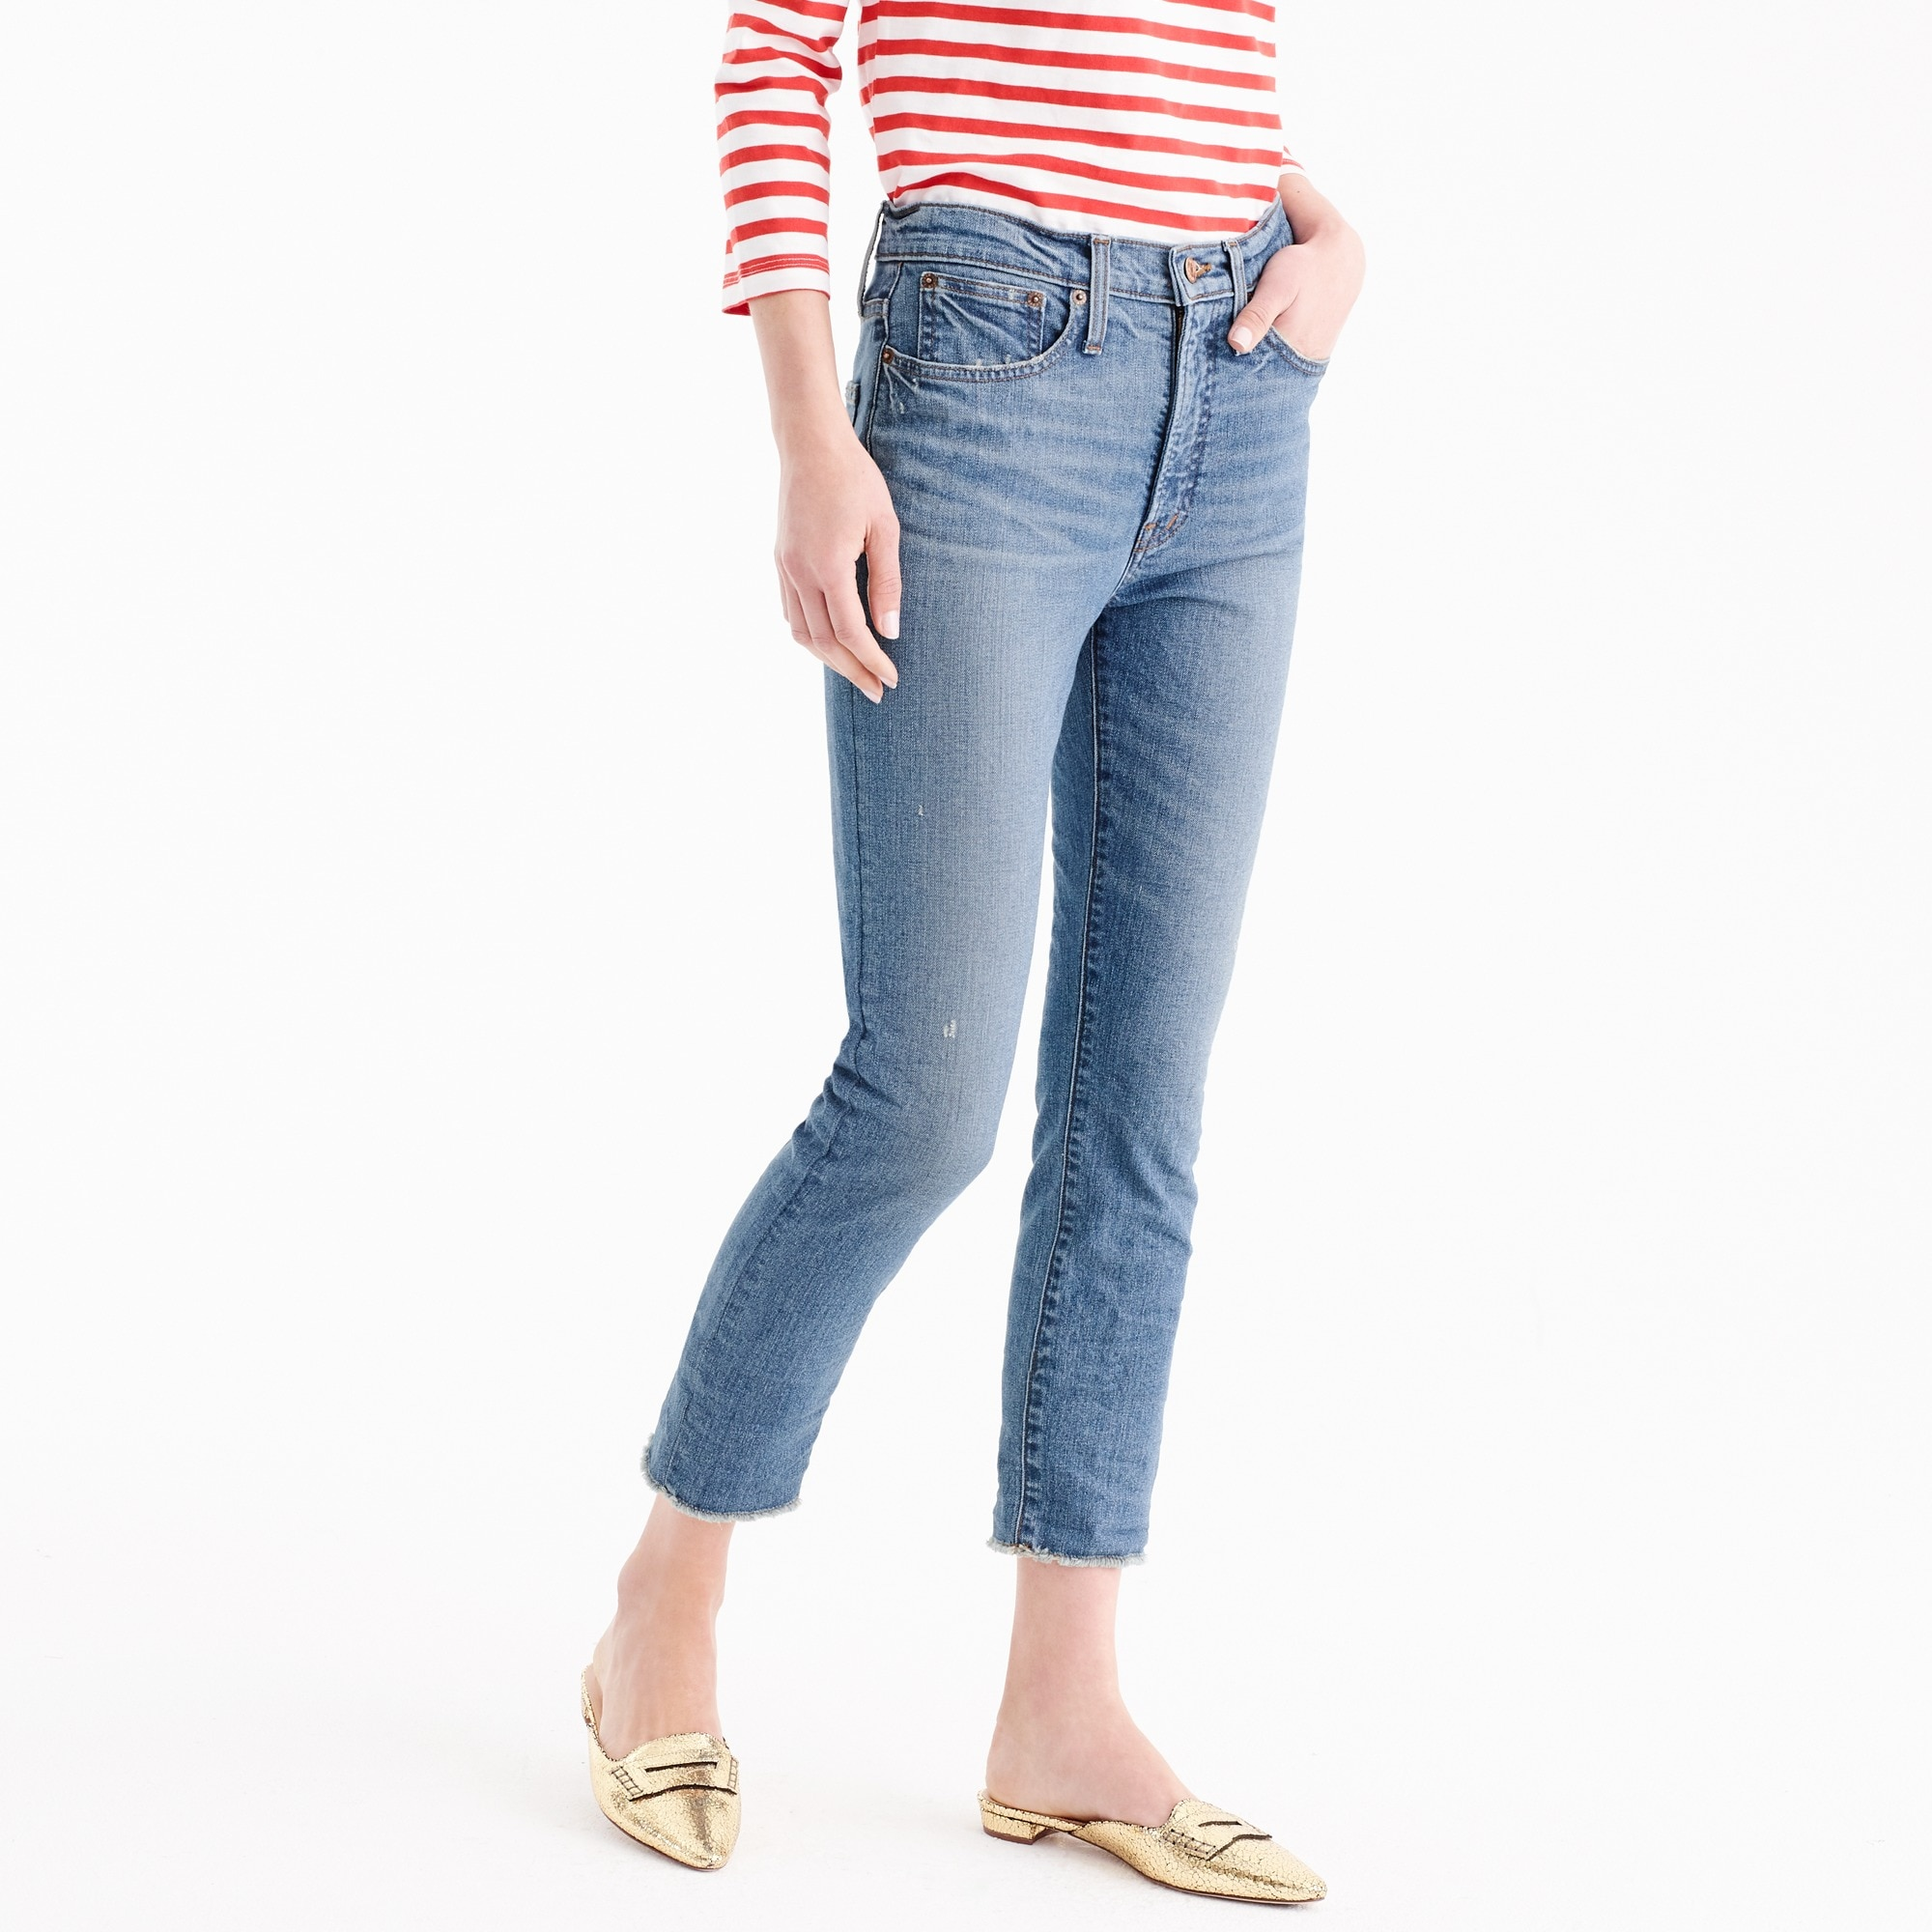 vintage crop jean in landers wash : women denim